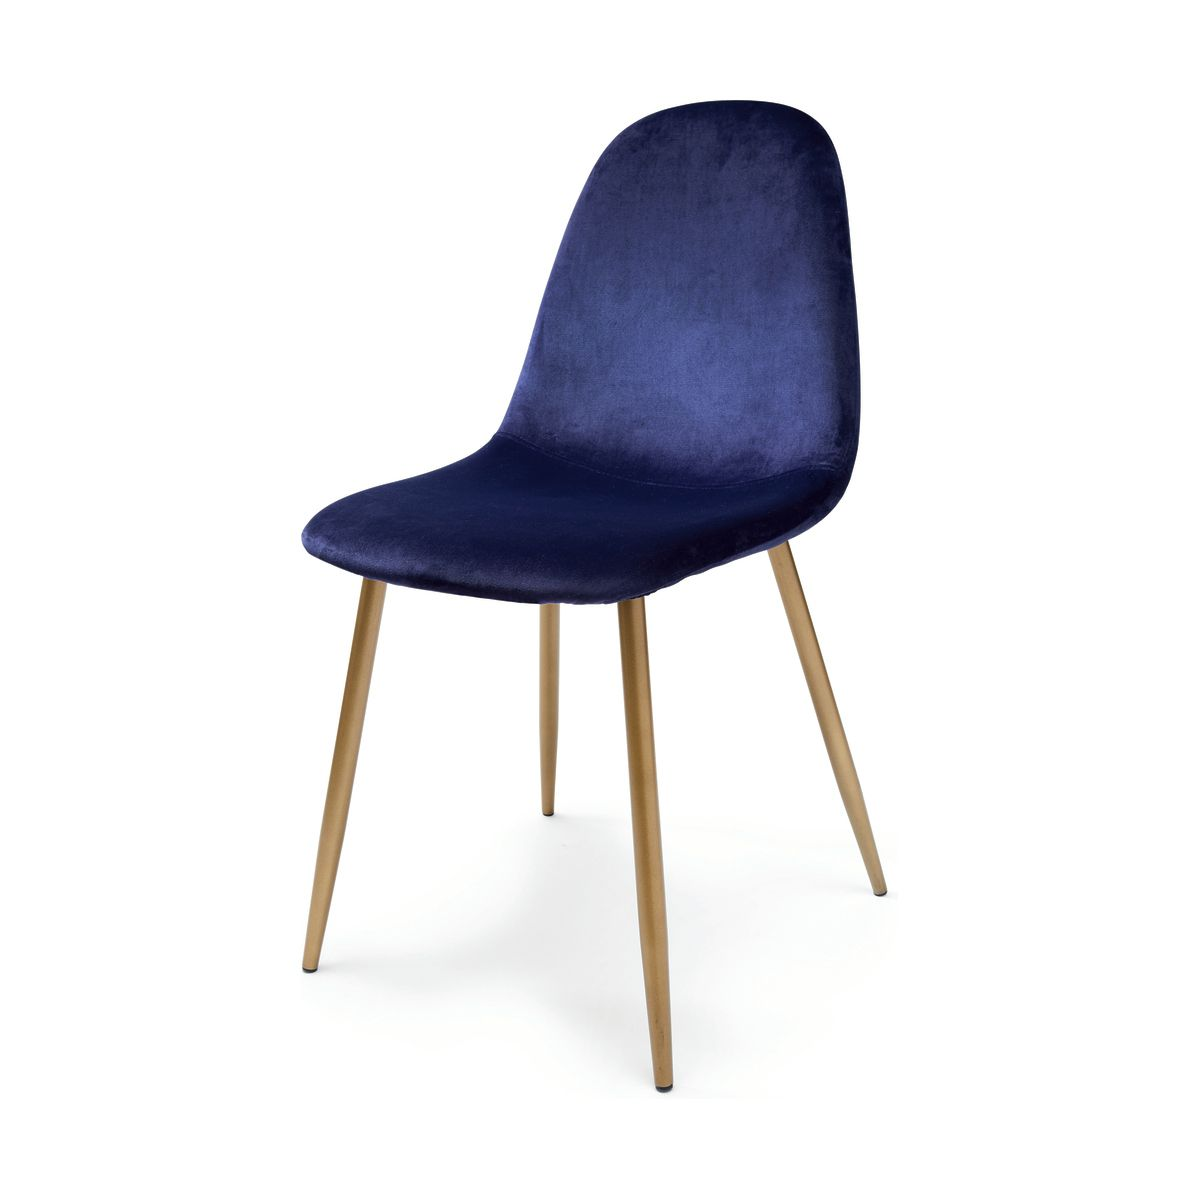 Velvet Chair Navy Kmart Decor Chairs Stools Benches